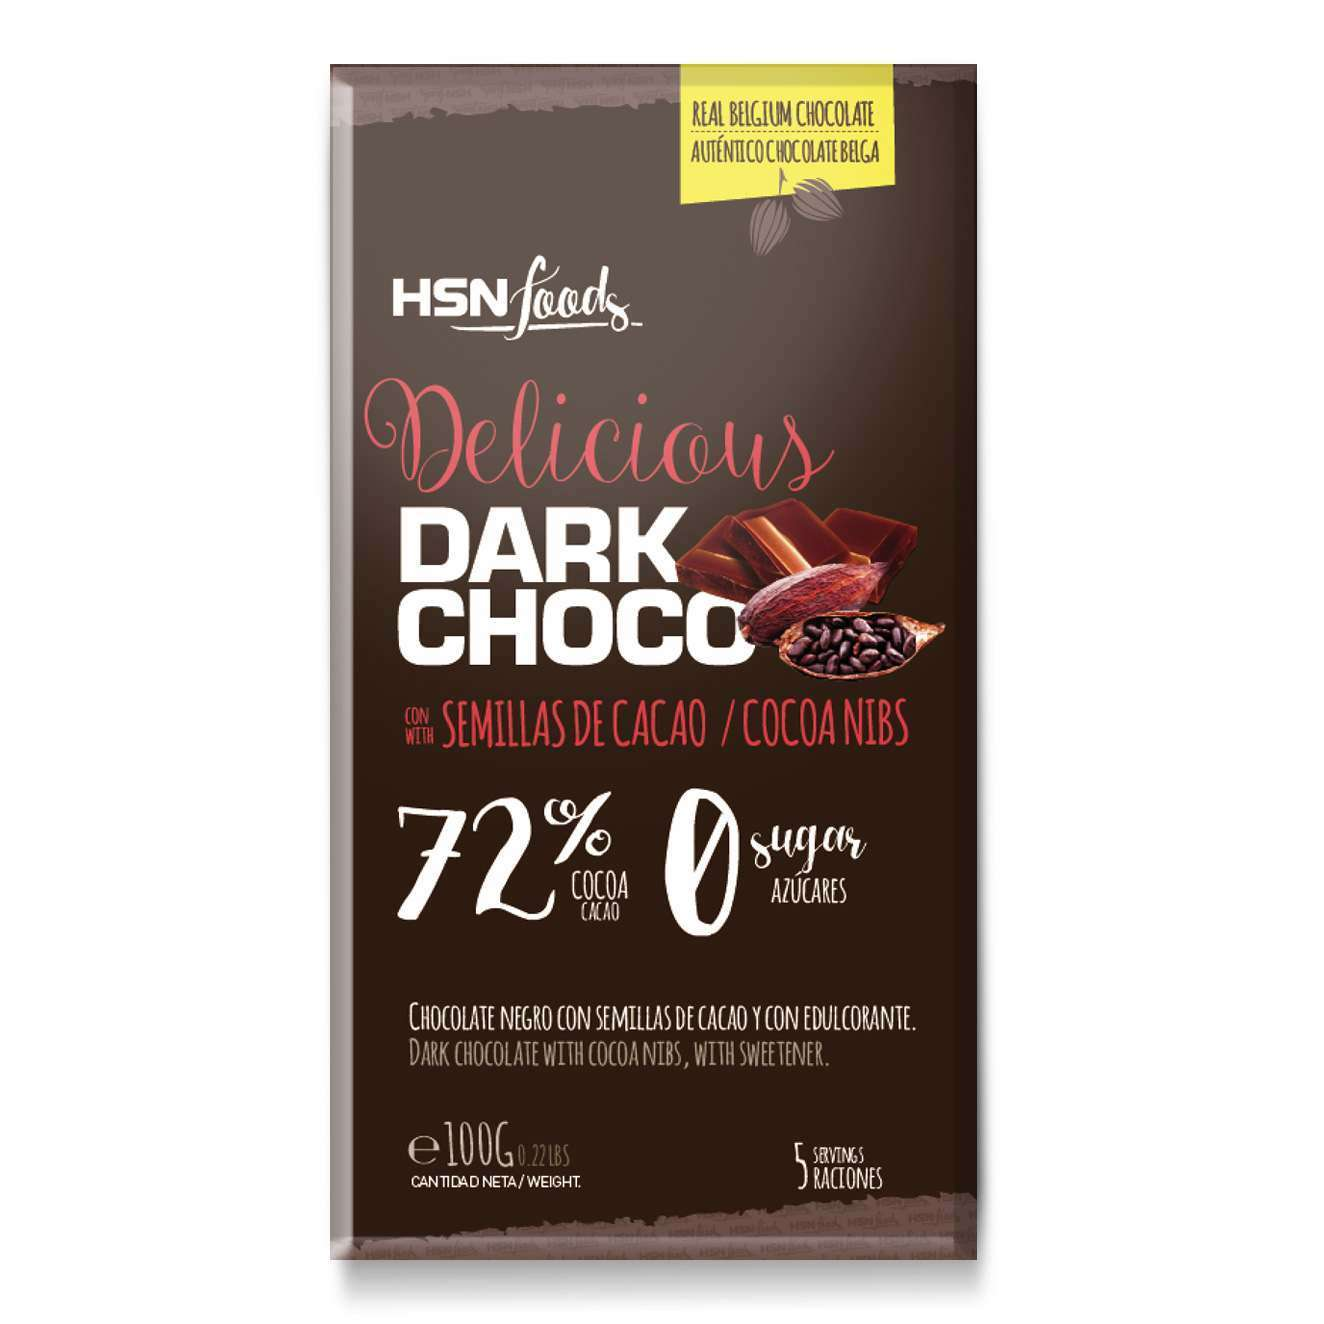 delicious-dark-choco-semillas-de-cacao-hsn-foods